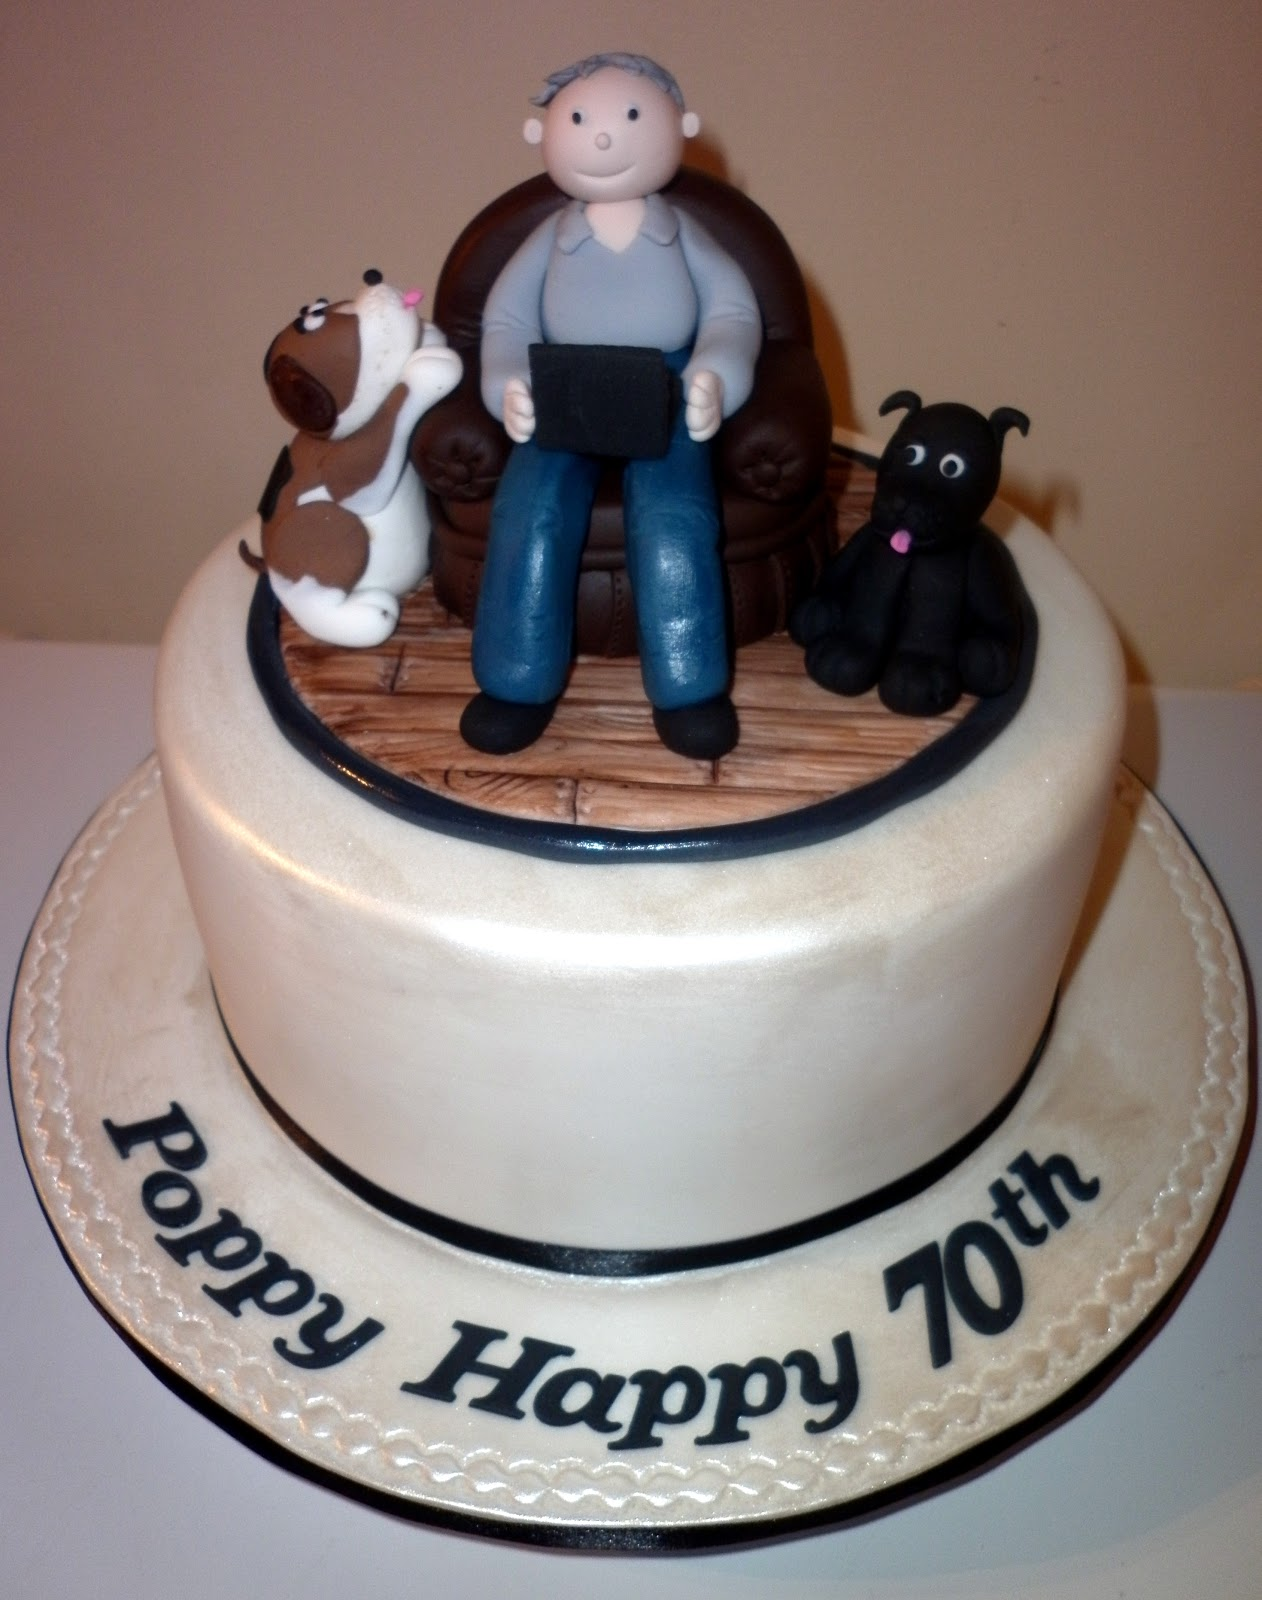 Images Of A Birthday Cake For A Man : Caketopia: 70th Birthday Cake